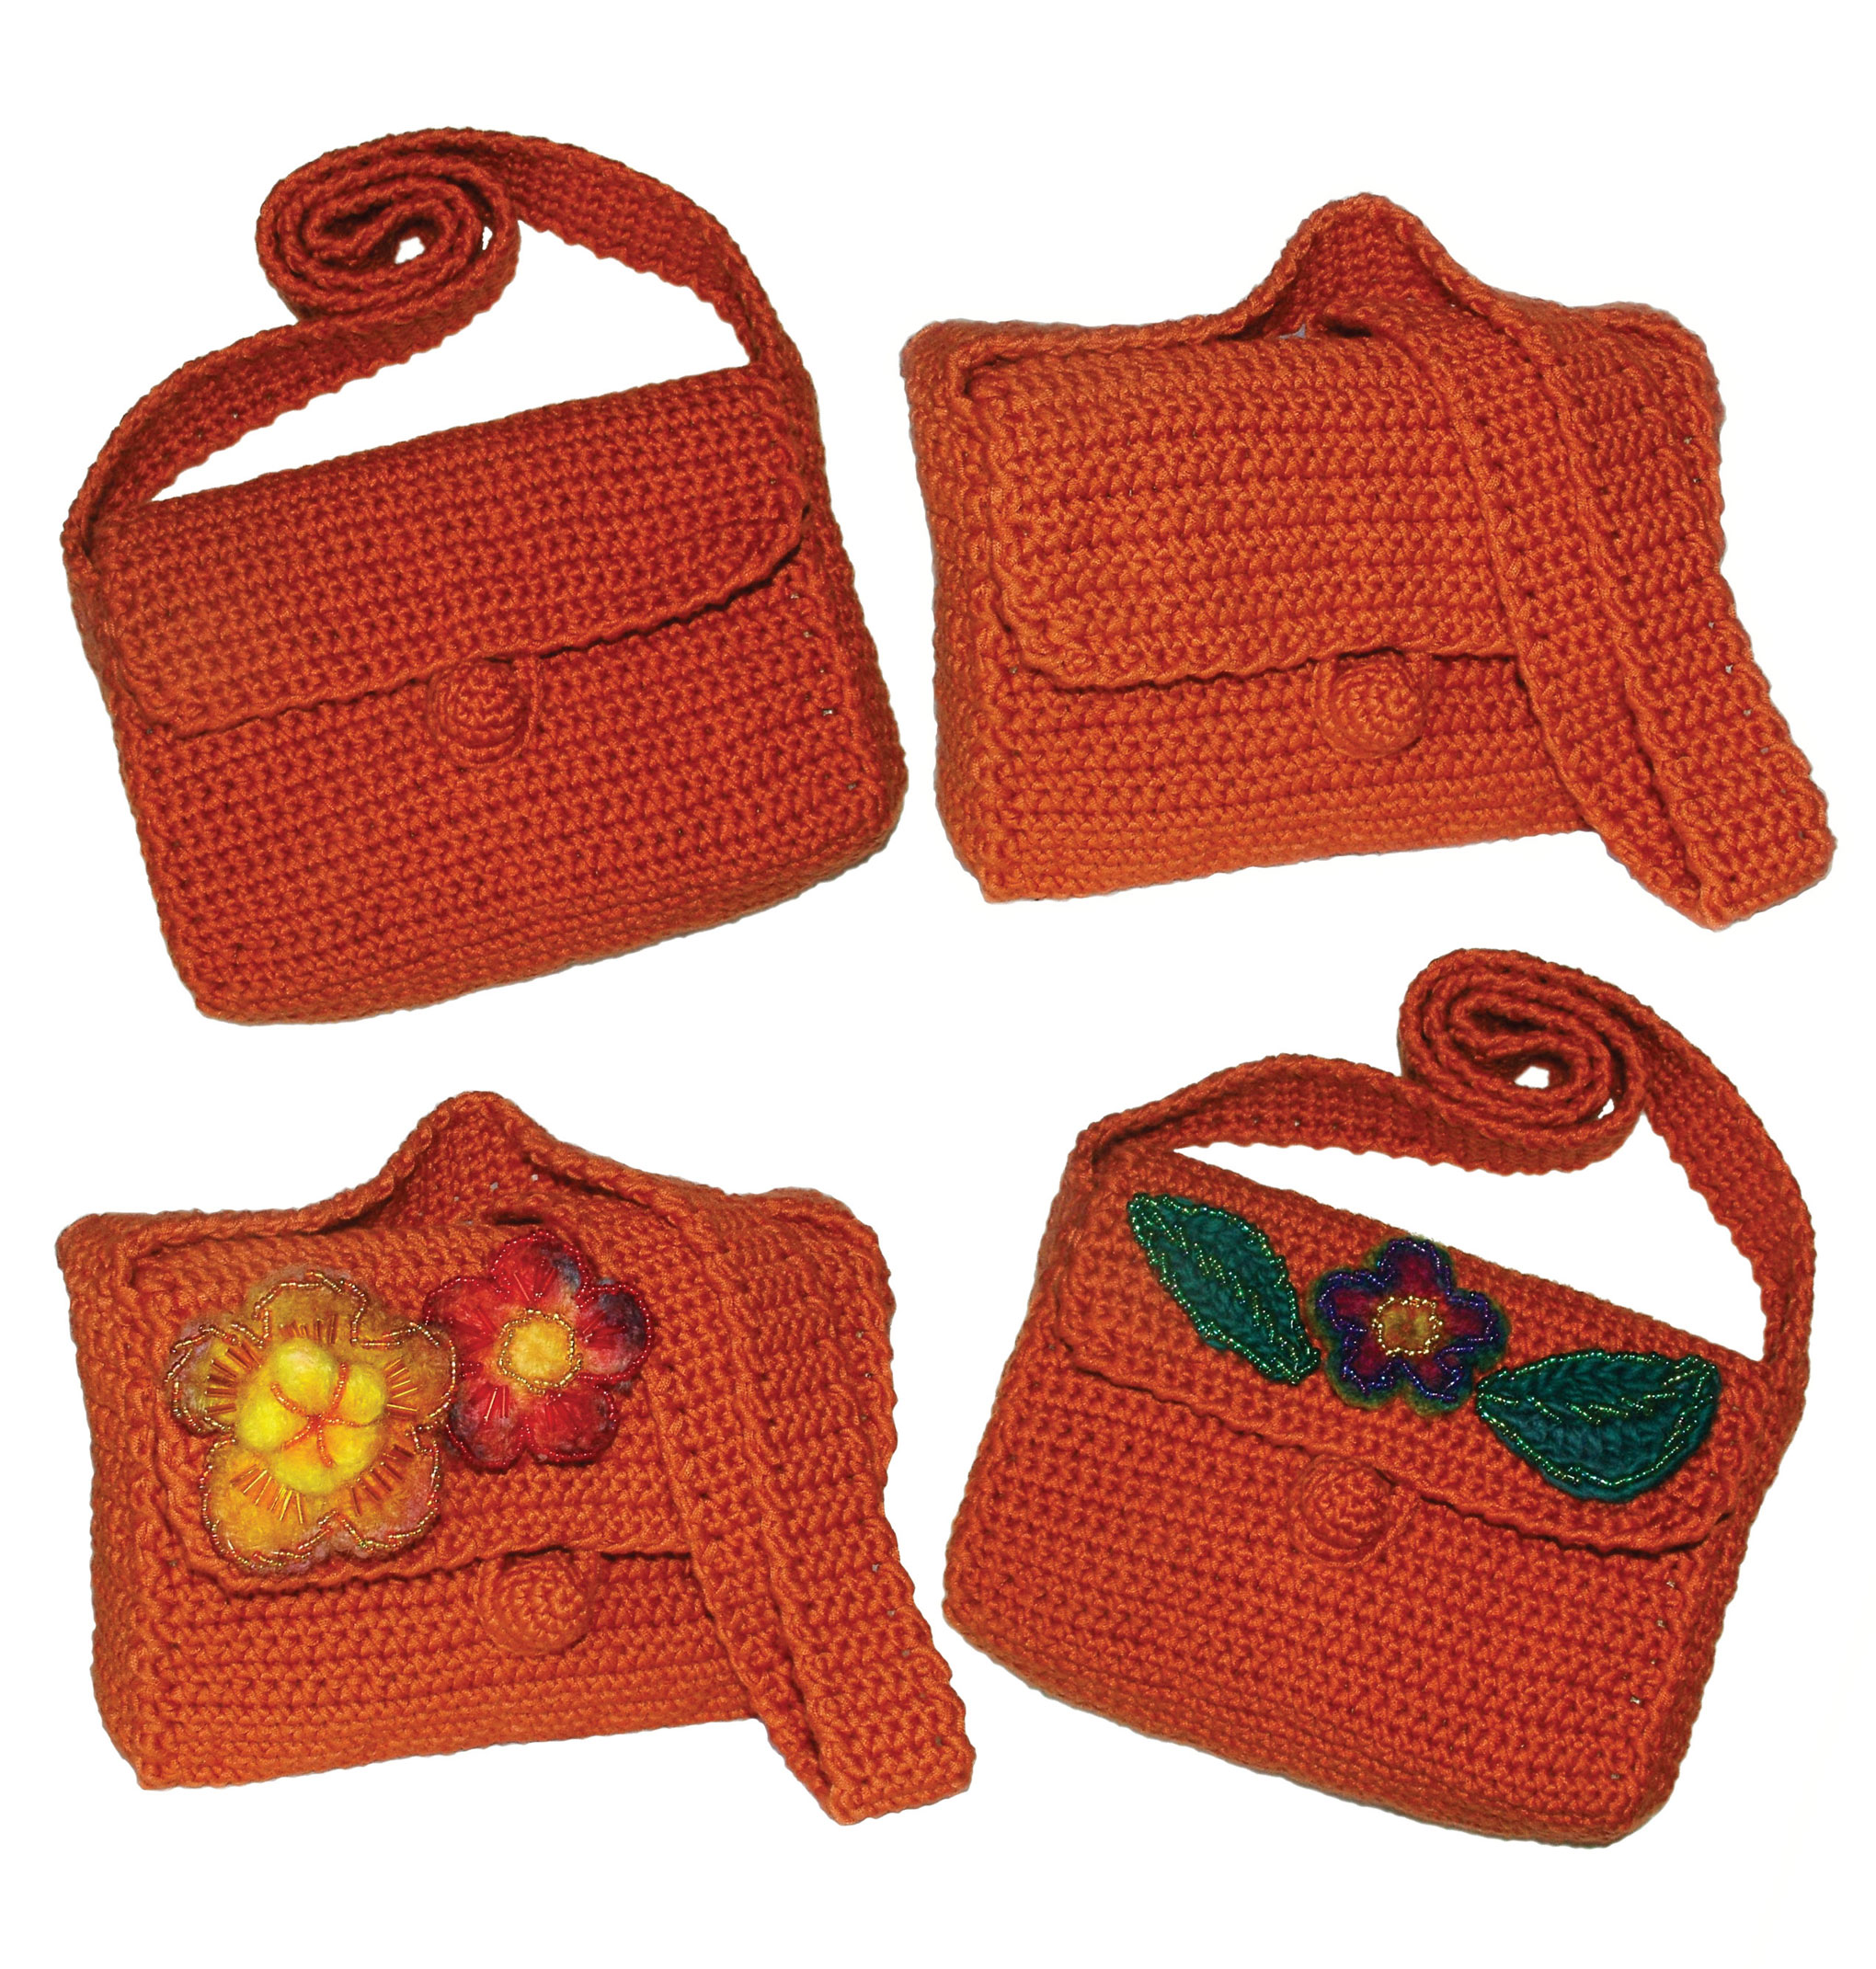 Crochet Designs For Bags : new crochet patterns to play with? Renate Kirkpatricks Freeform ...